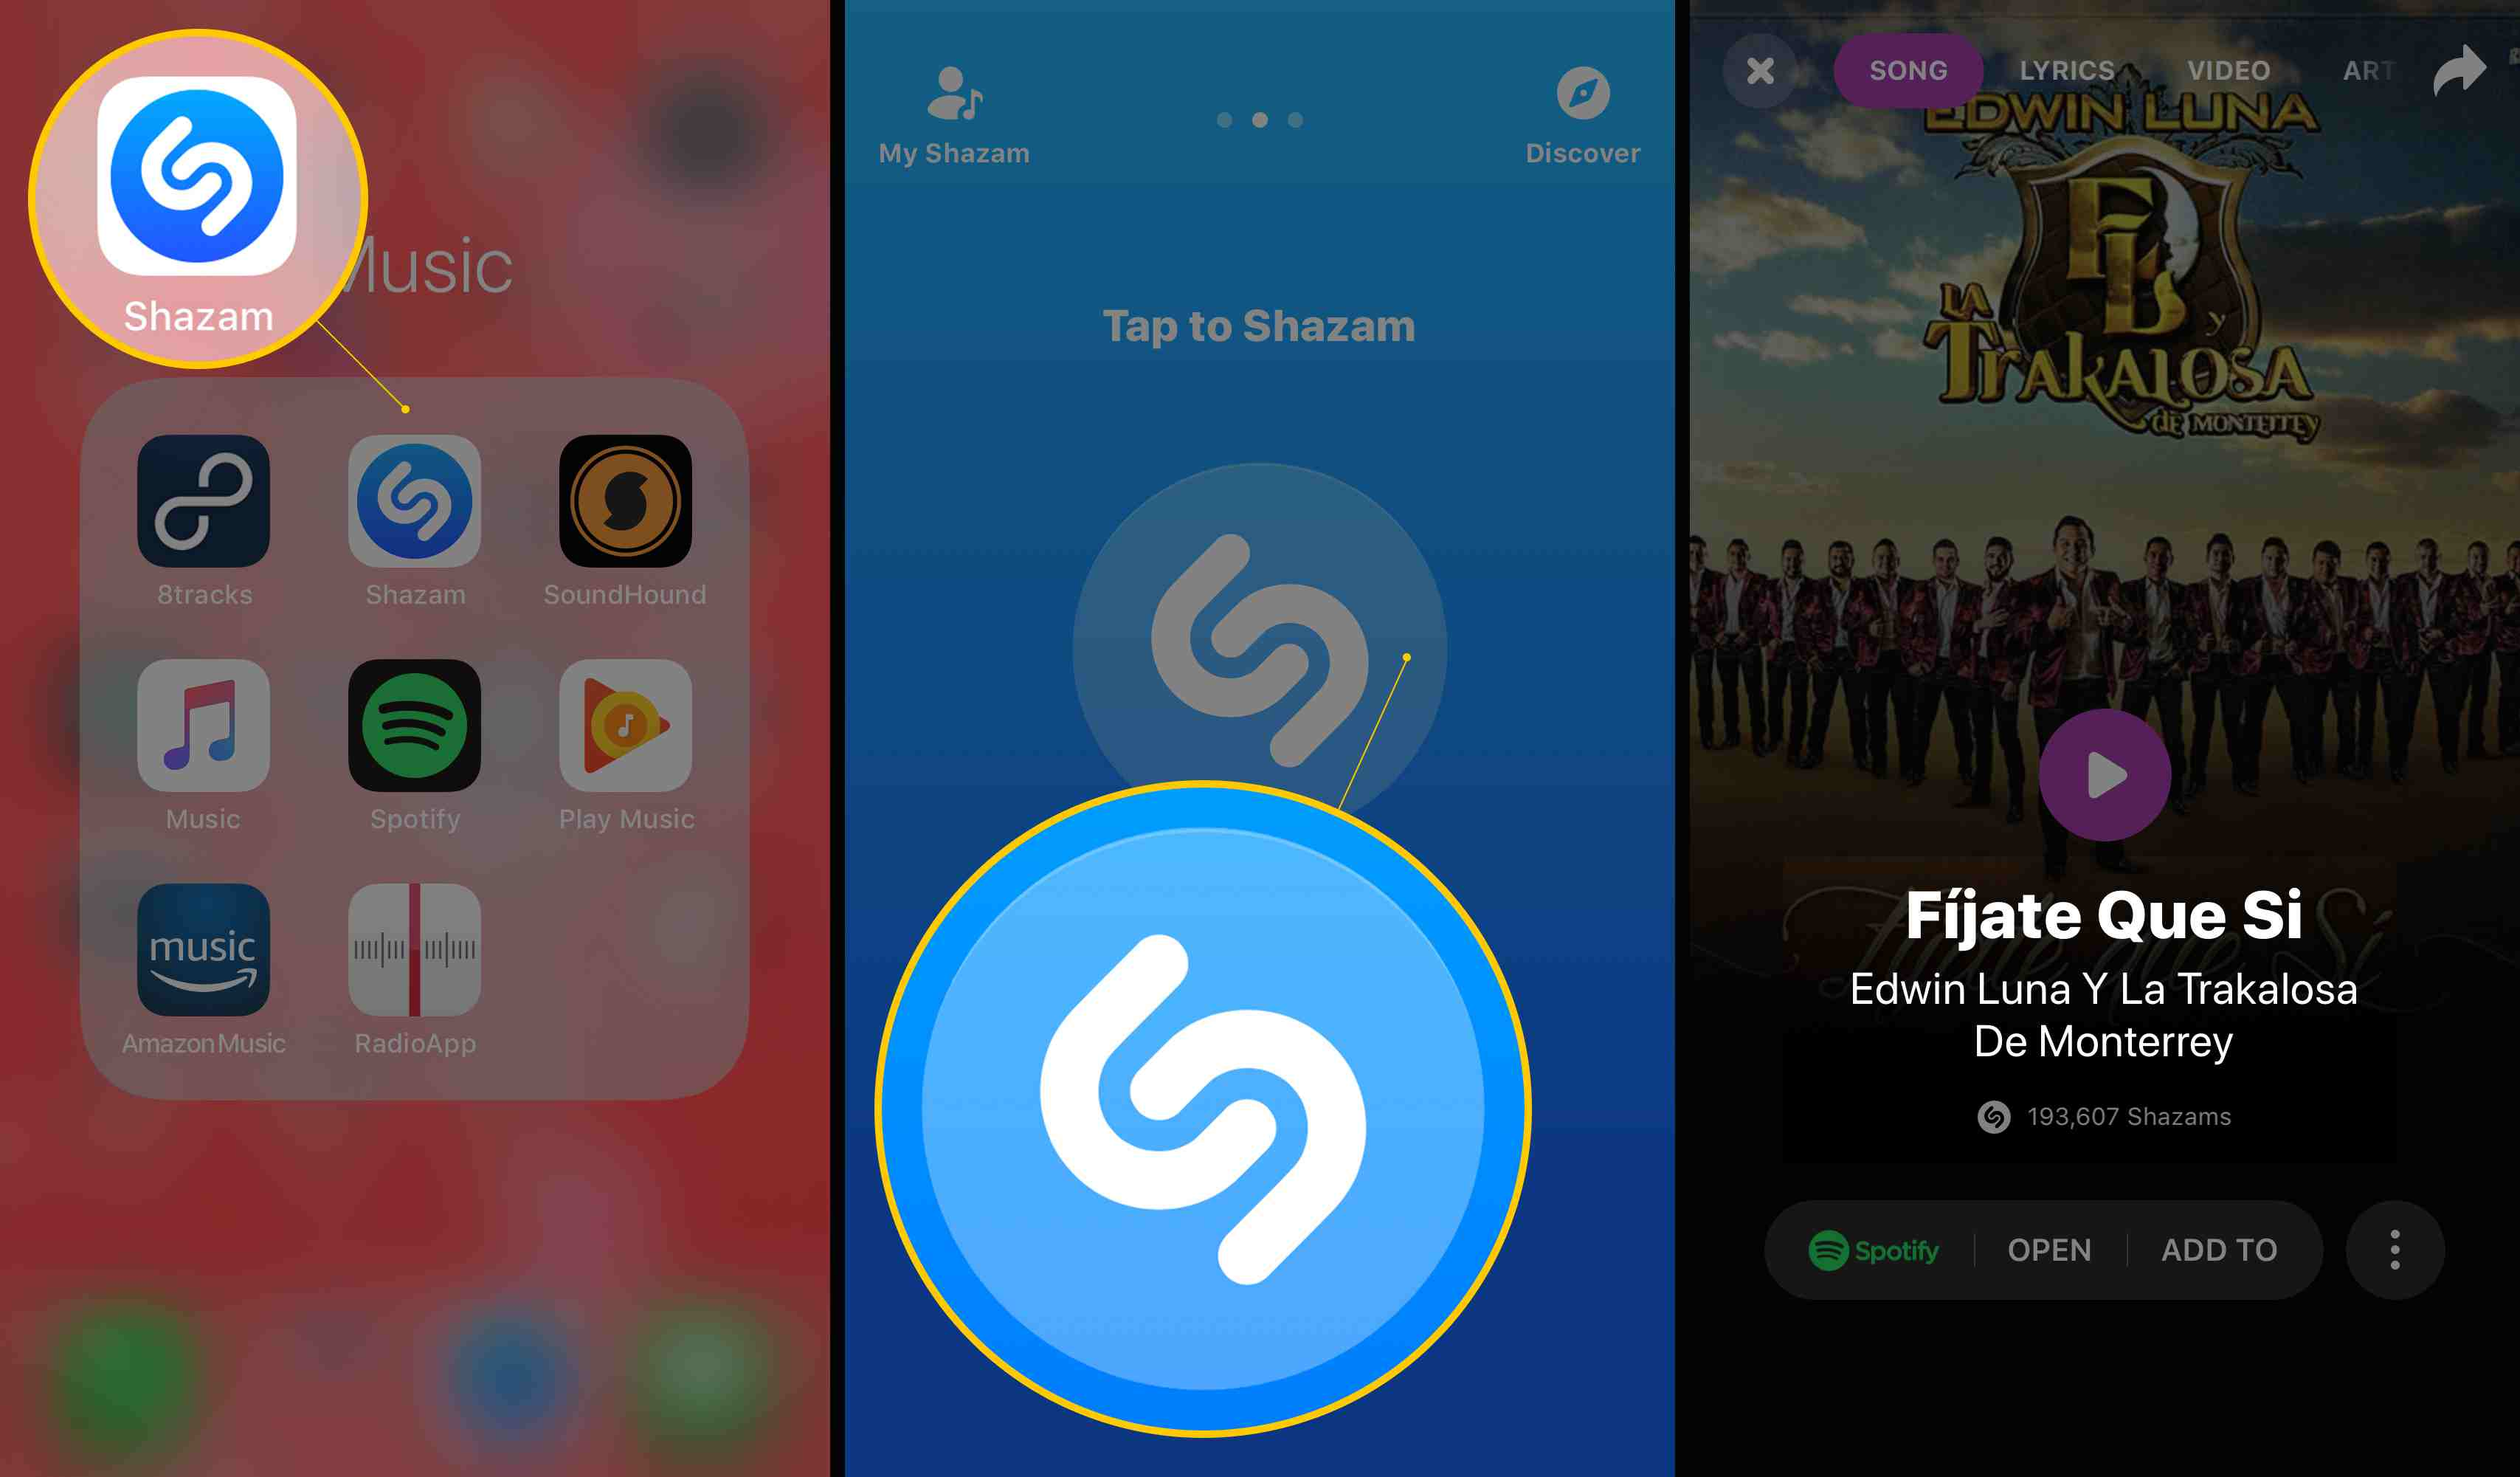 How to Shazam a Song on Your Phone